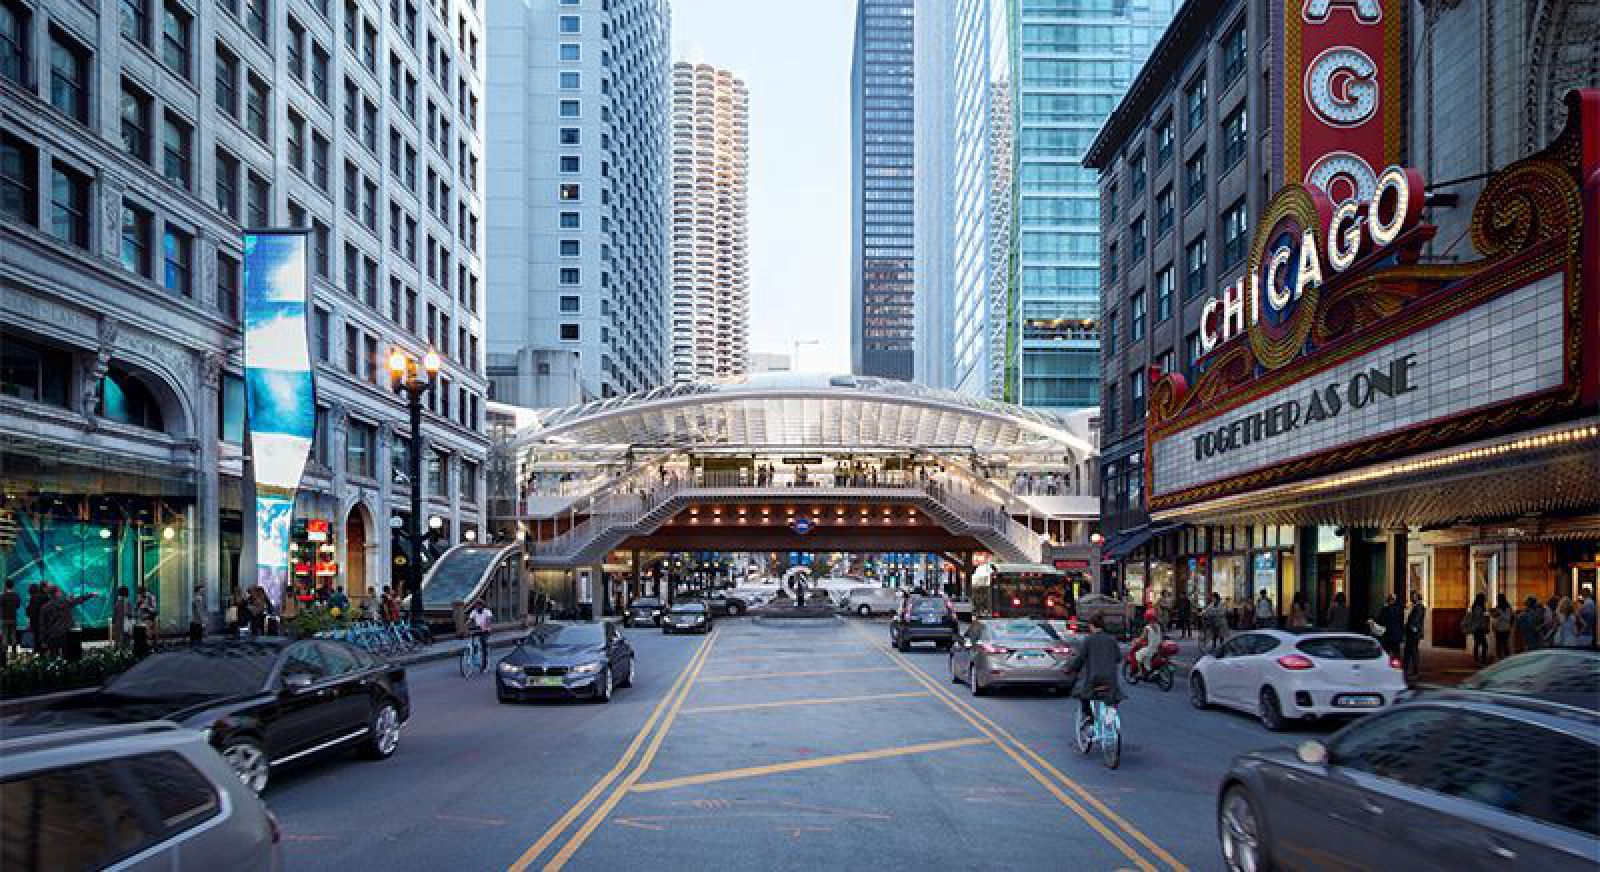 Chicago's State/Lake Station